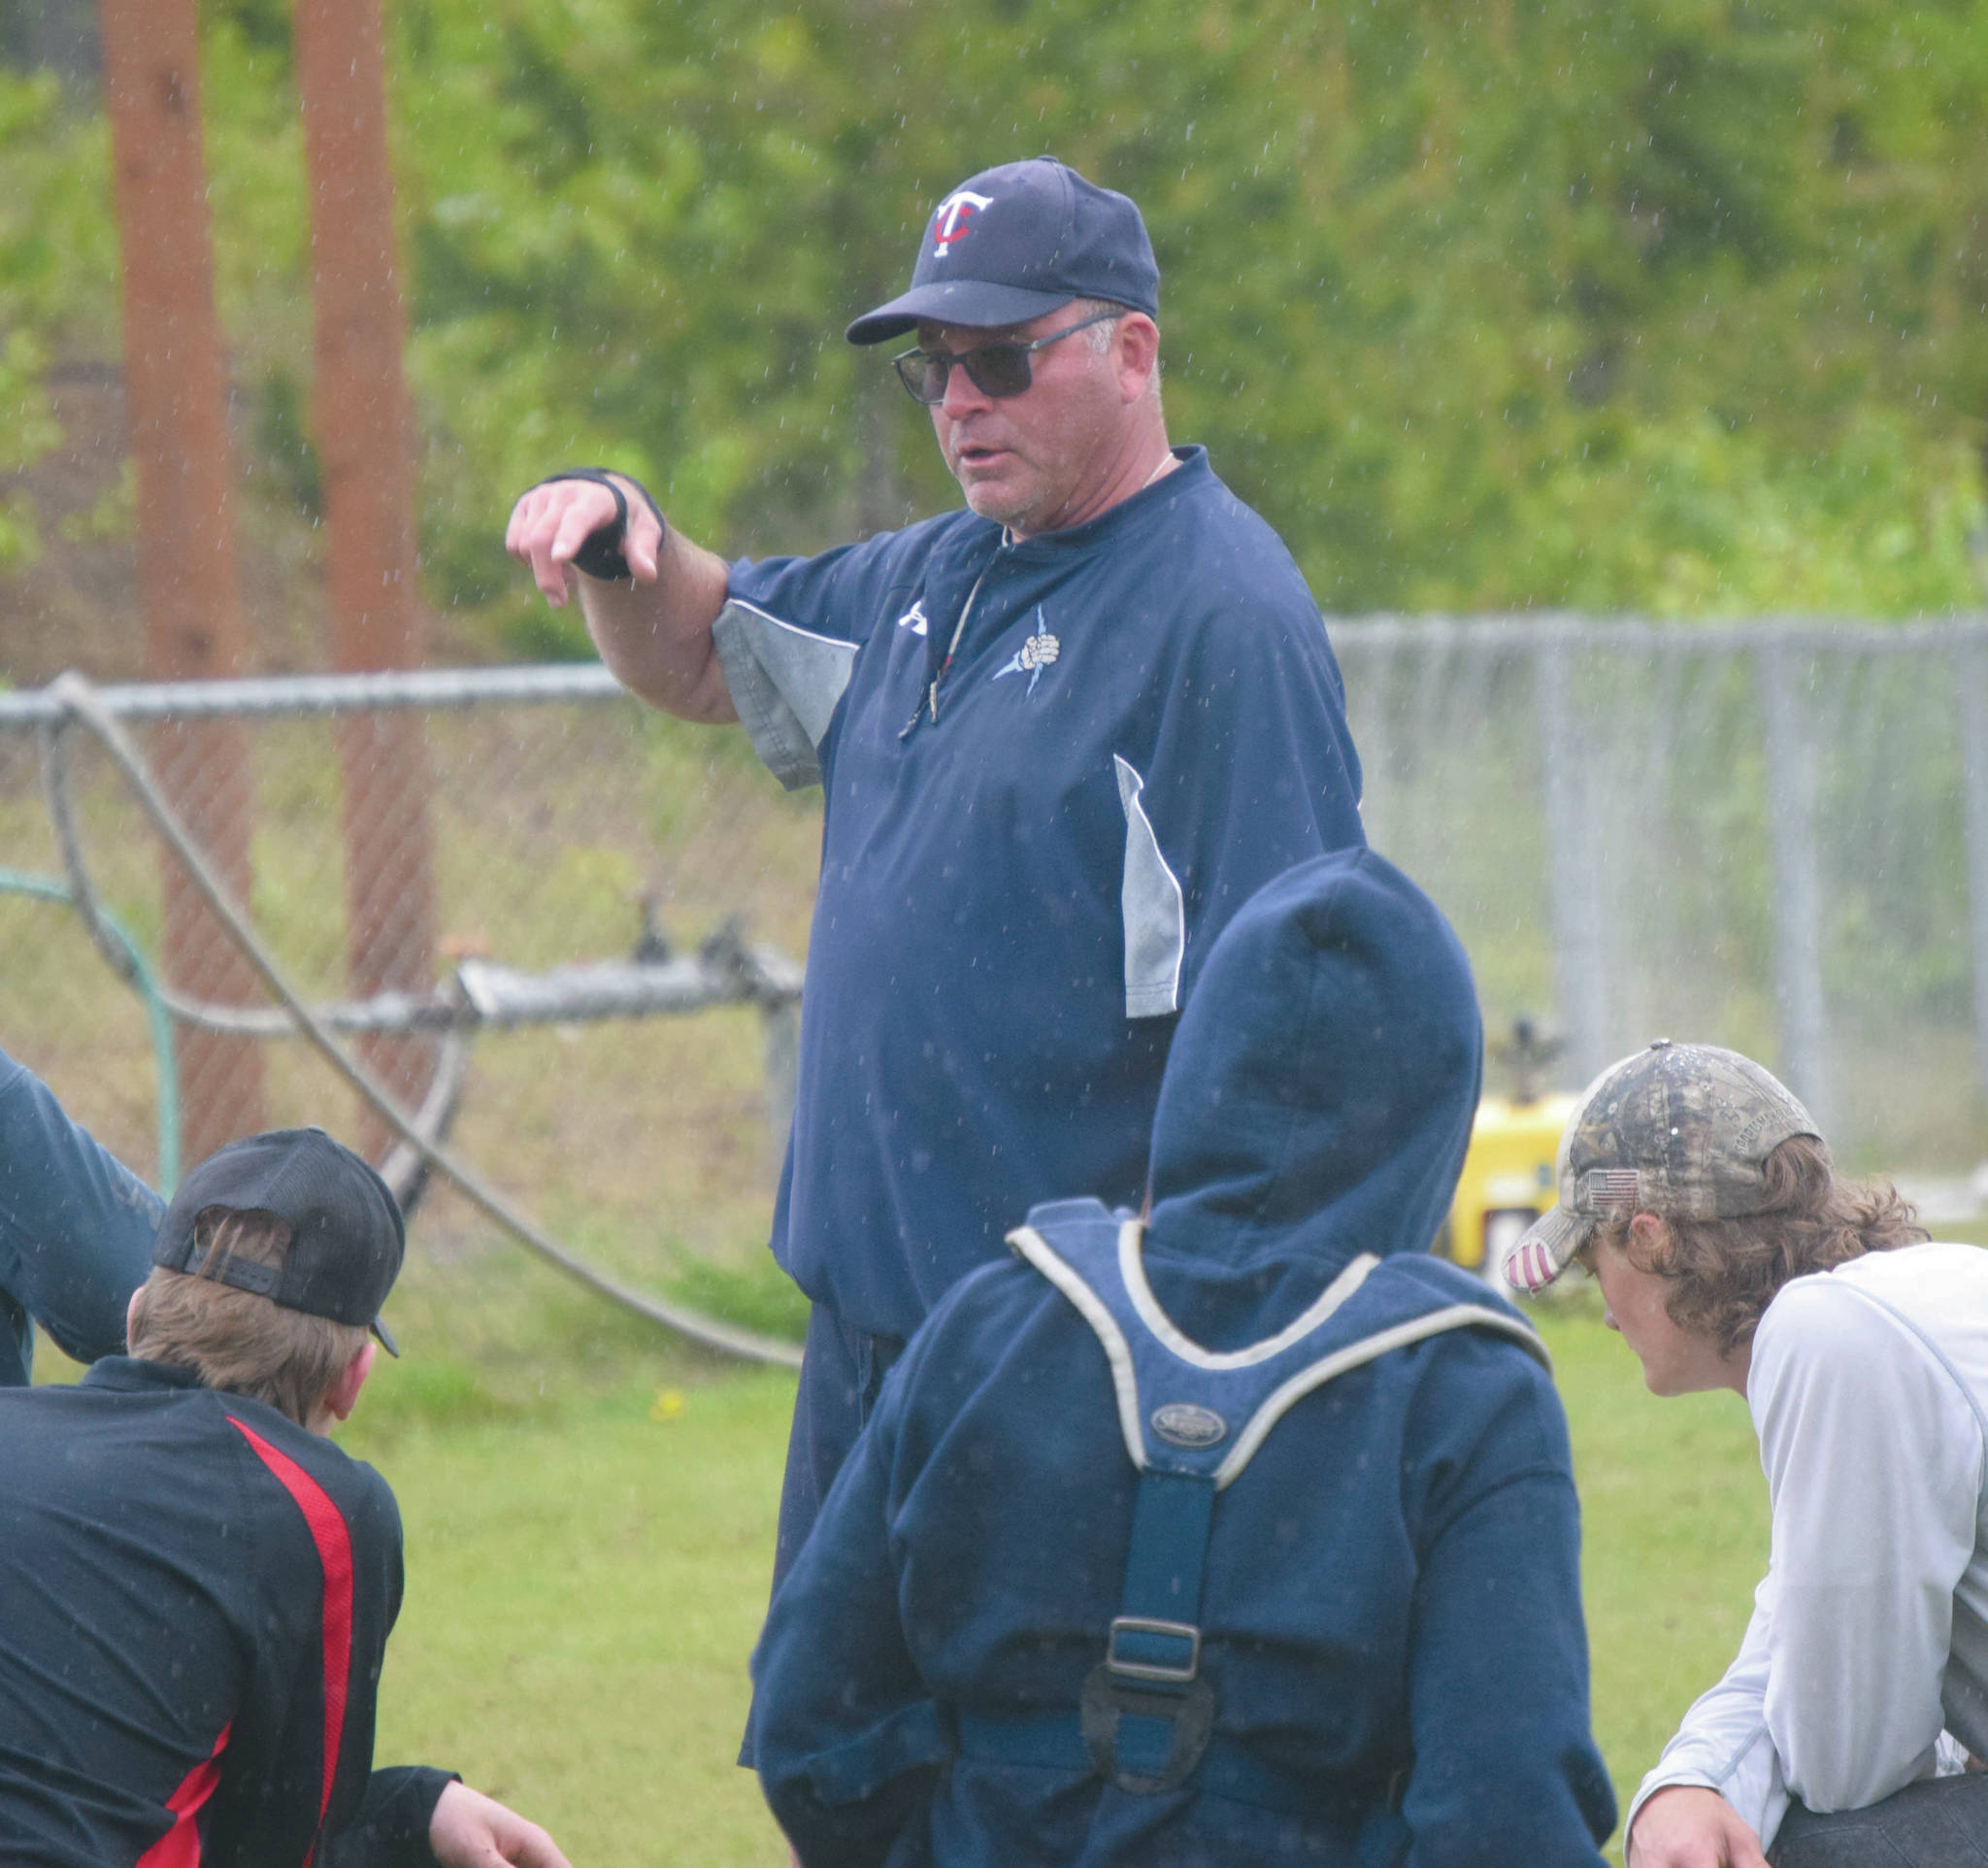 Alaska 20 head coach Robb Quelland addresses the team during practice Monday, June 9, 2020, at the Soldotna baseball fields in Soldotna, Alaska. (Photo by Jeff Helminiak/Peninsula Clarion)